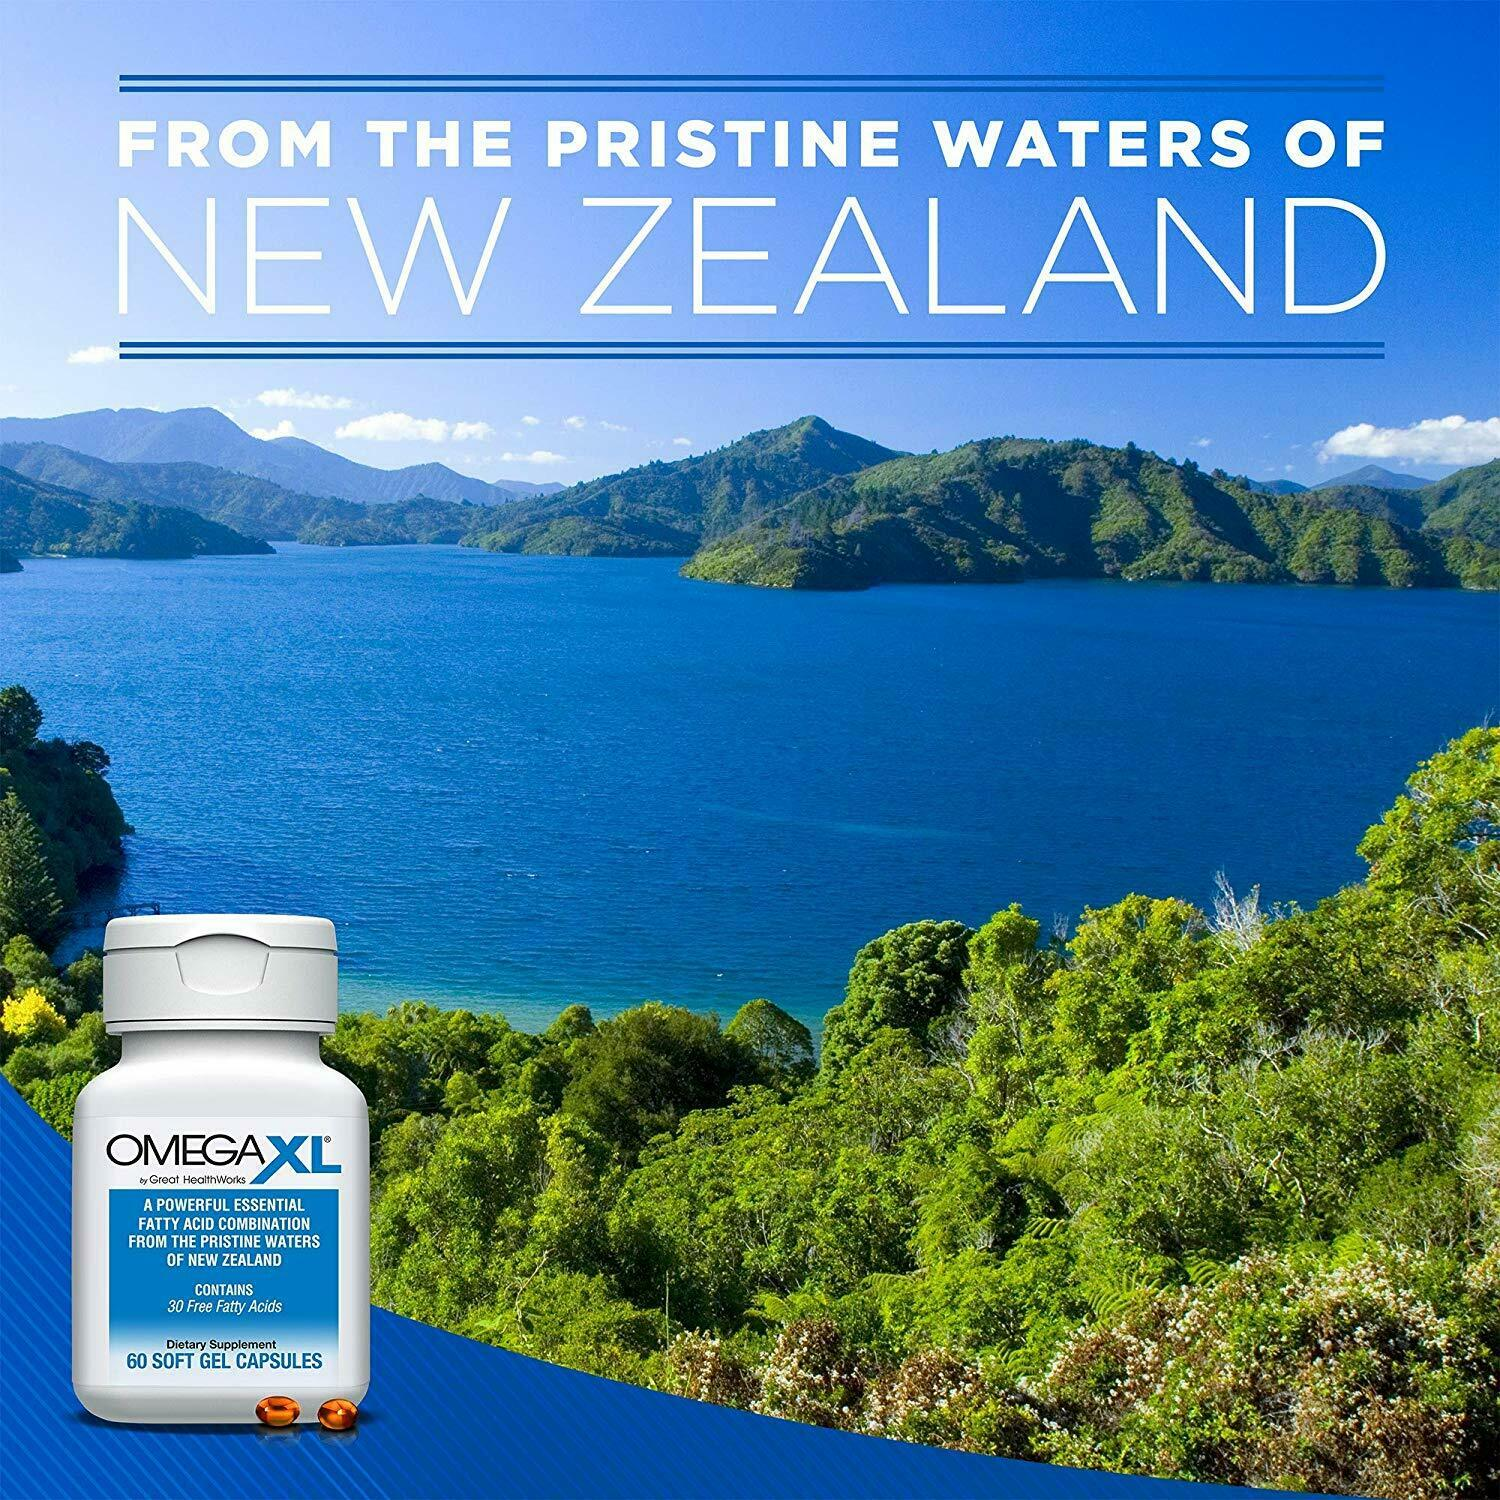 Omega XL 120 Capsules - Green Lipped Mussel New Zealand Omega 3 3